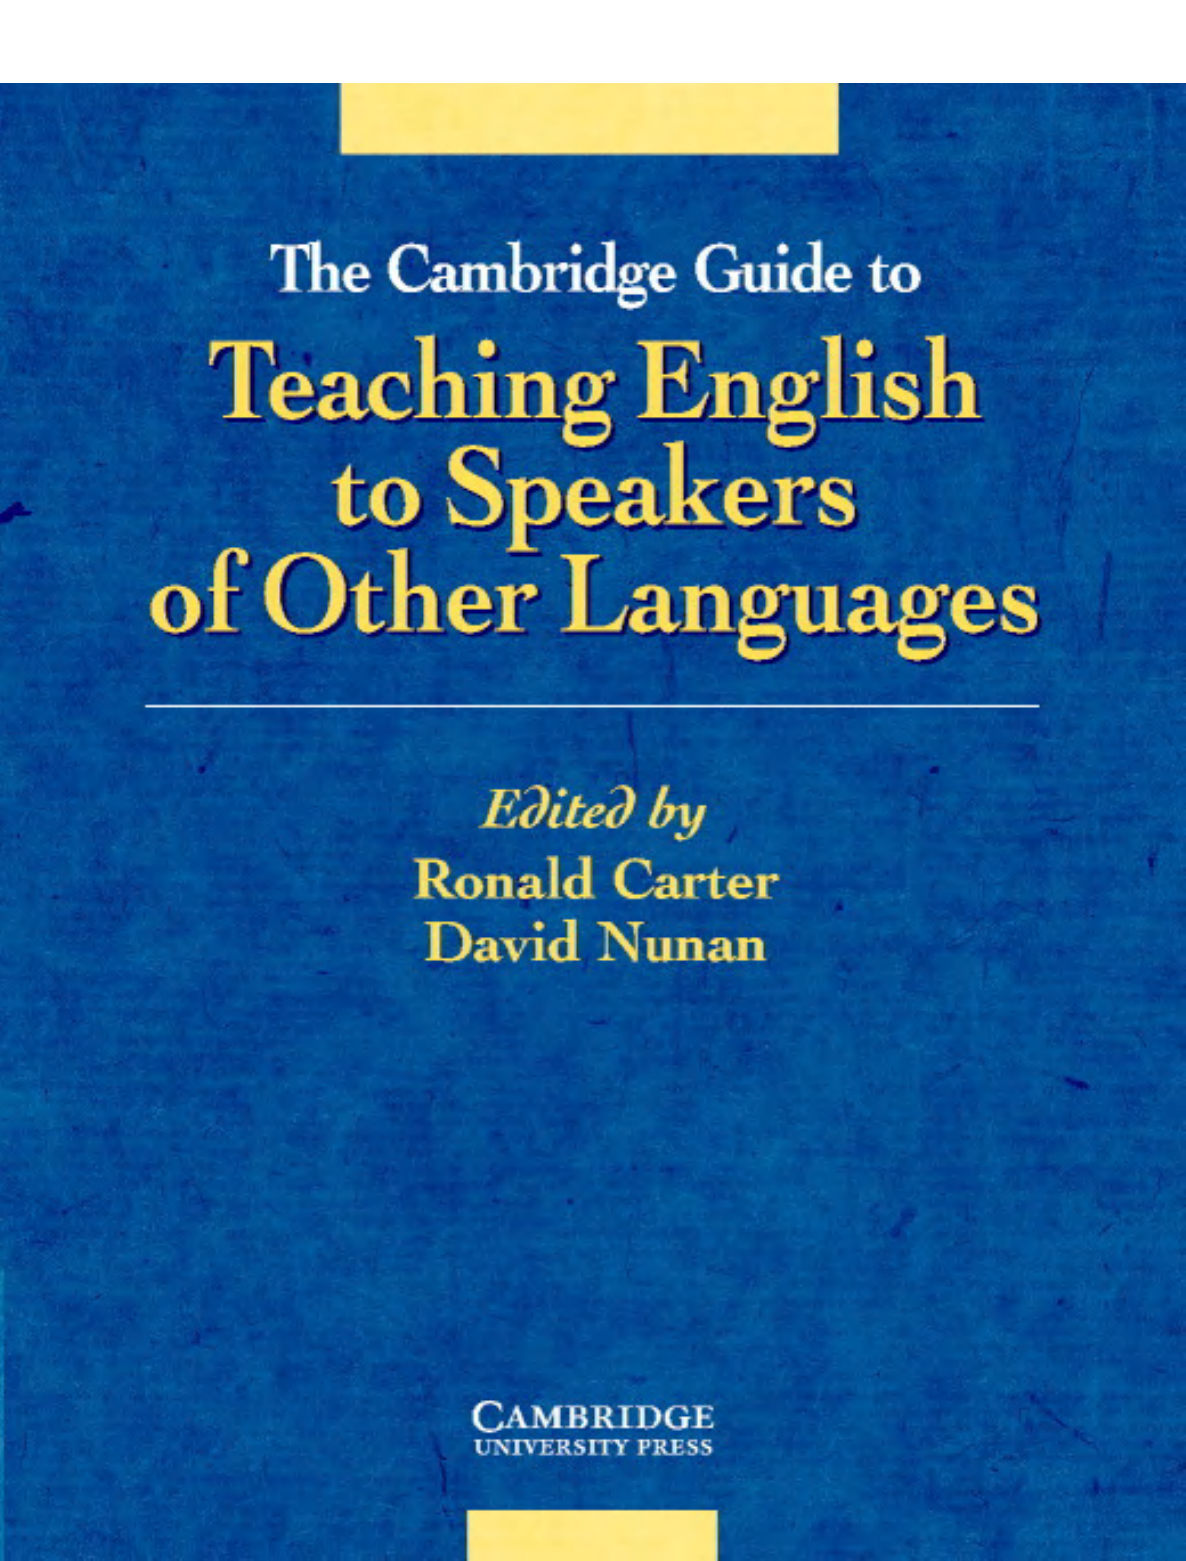 The Cambridge Guide To Teaching English To Speakers Of Other Languages Cambridge University Press 2001